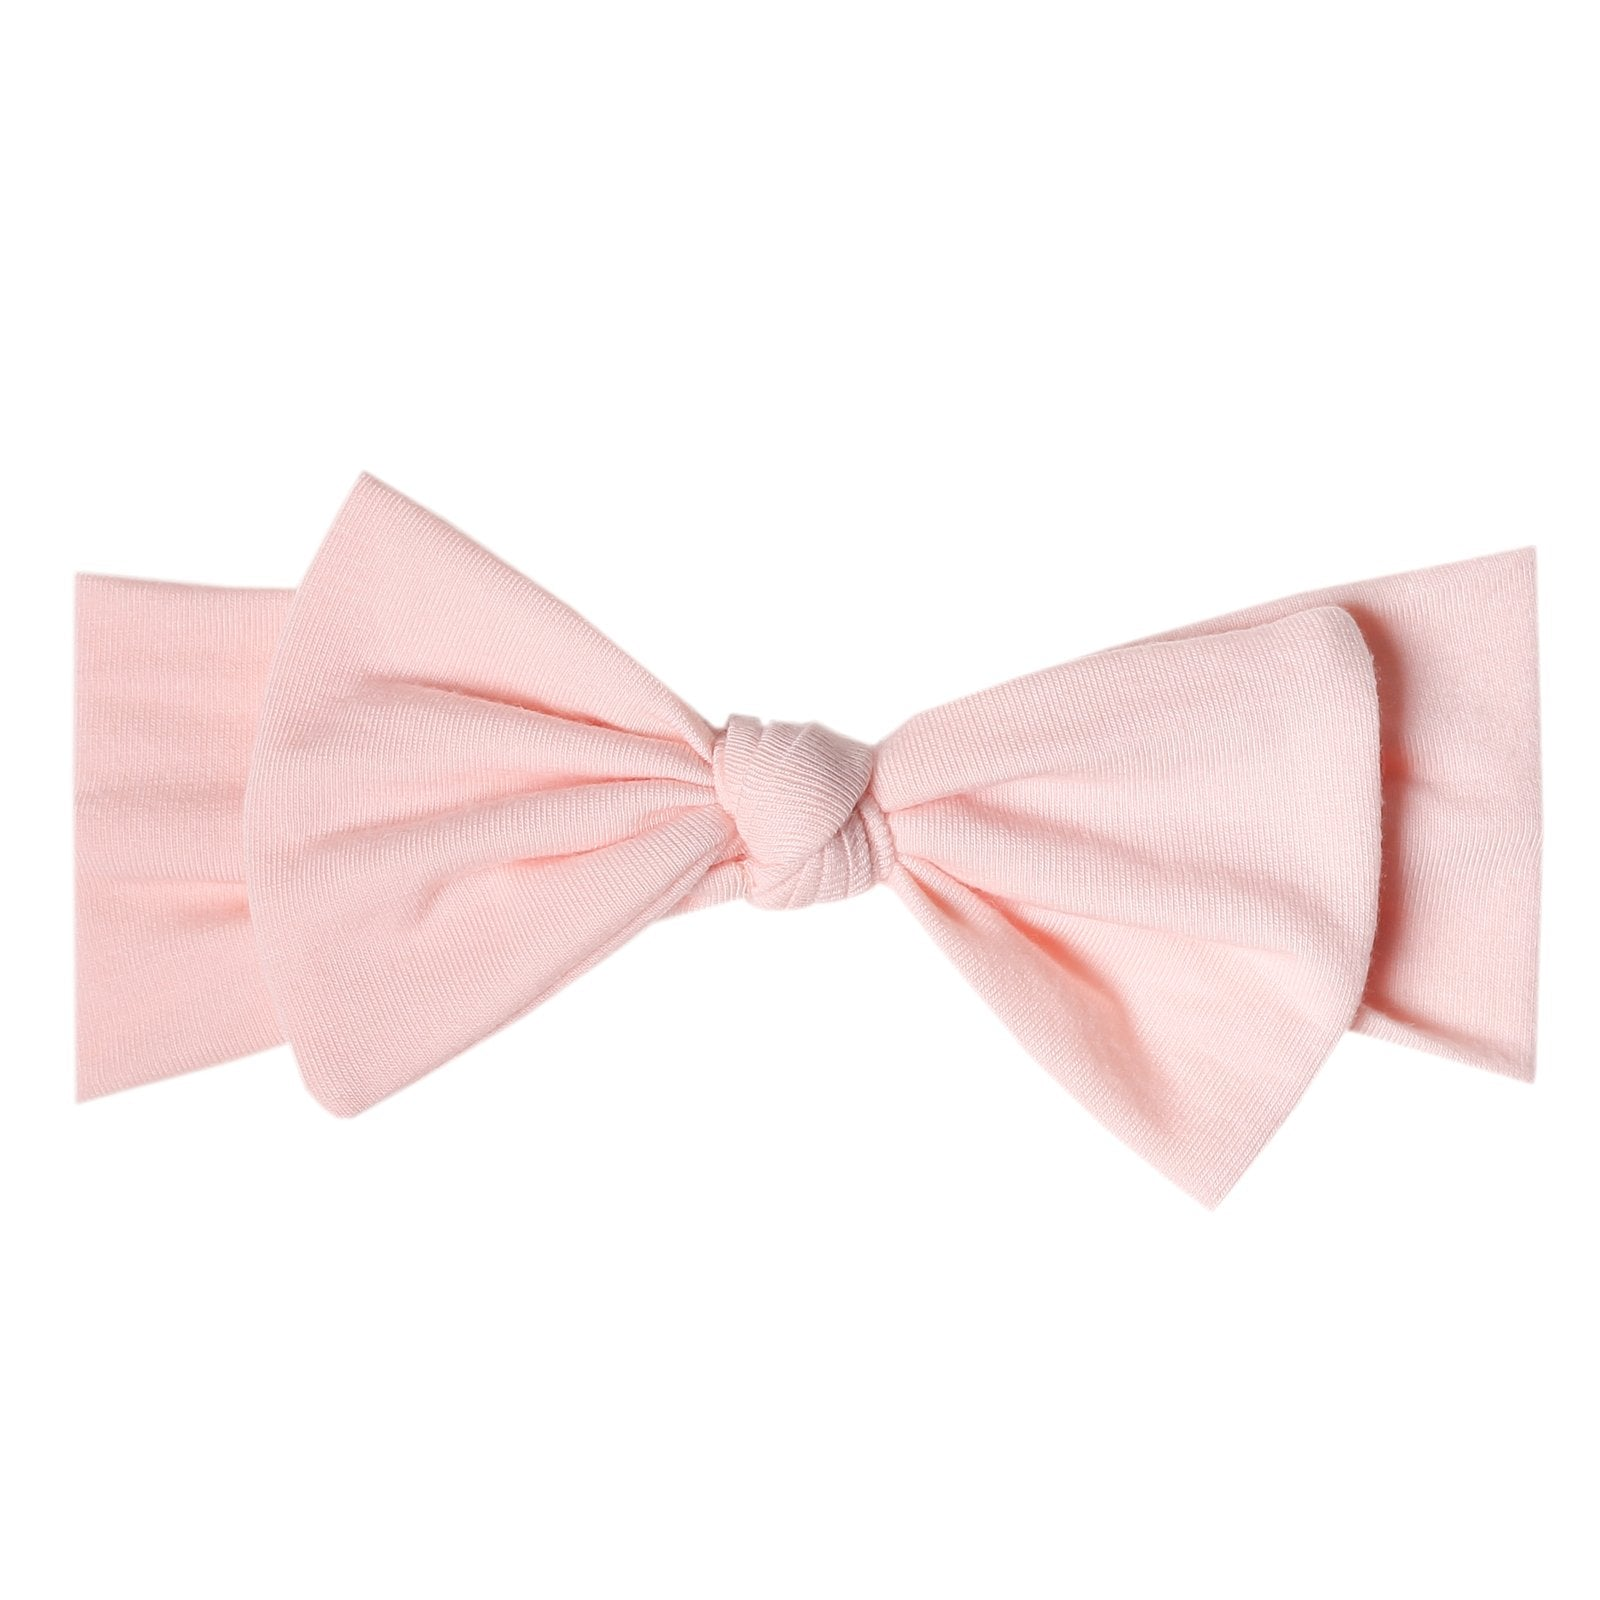 Knit Headband Bow - Blush